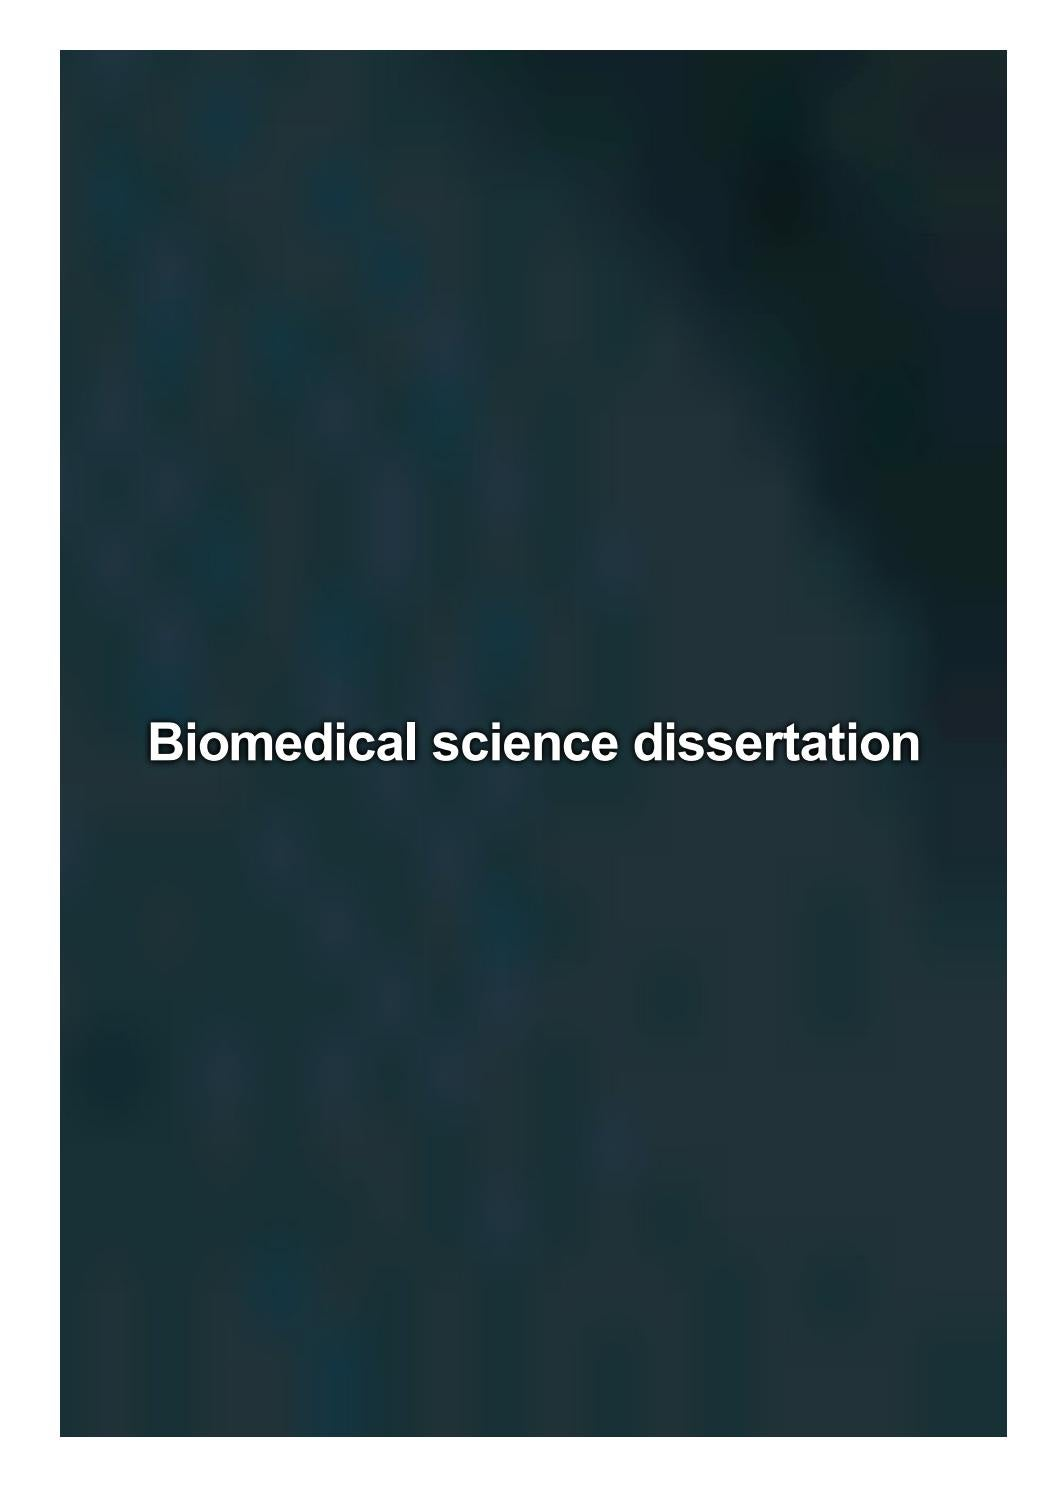 Biomedical science dissertation funding for dissertation research